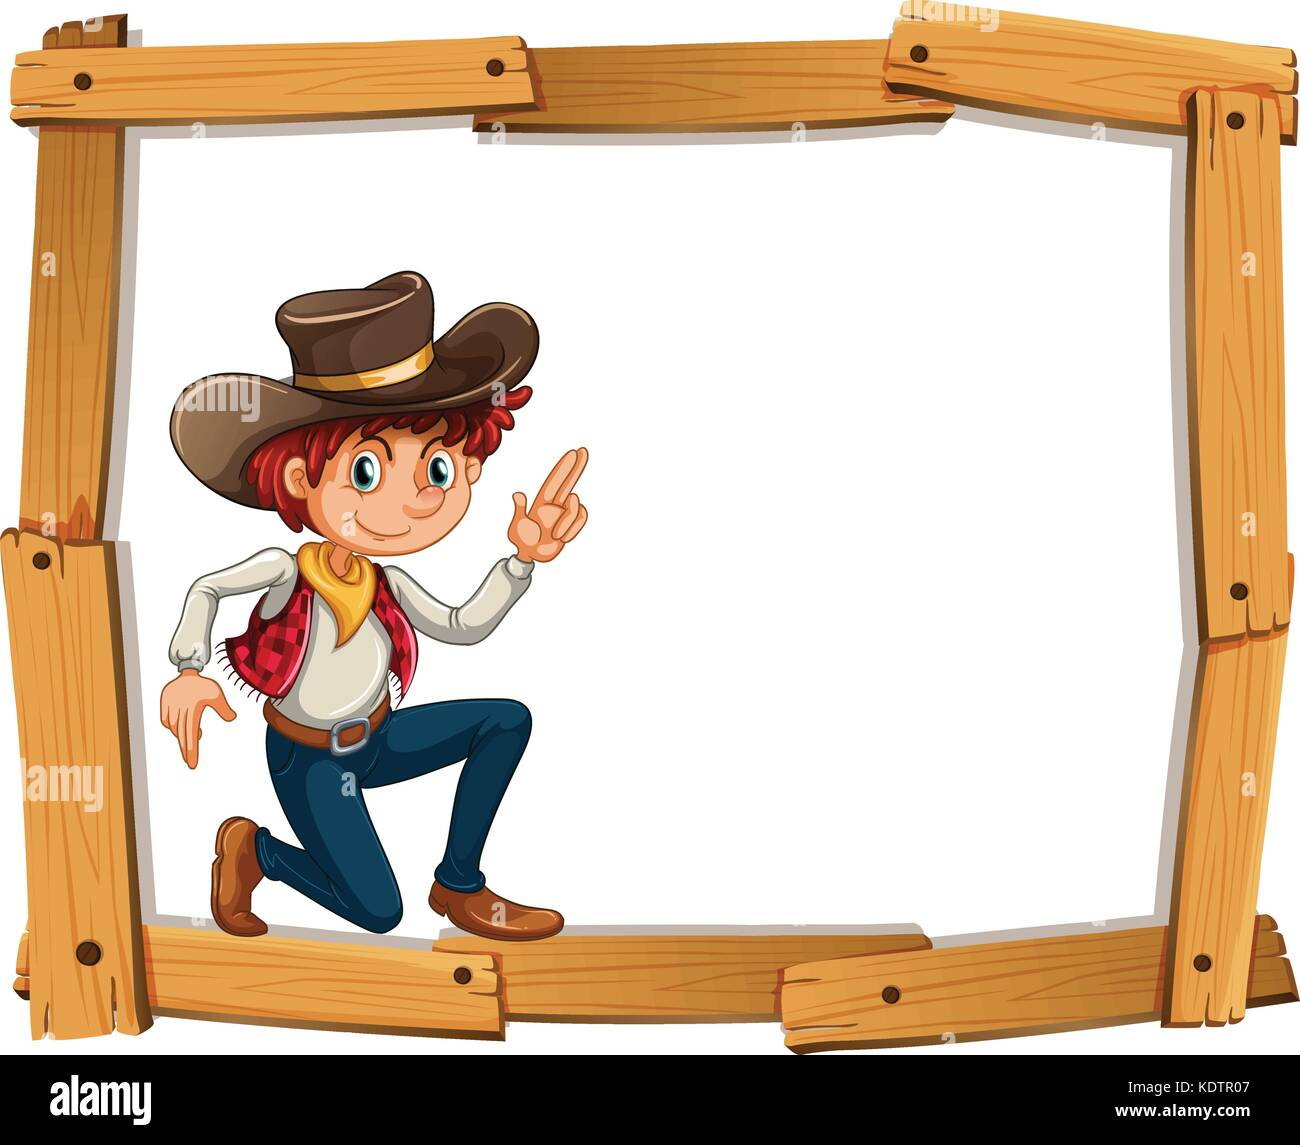 Frame template with cowboy illustration Stock Vector Art ...